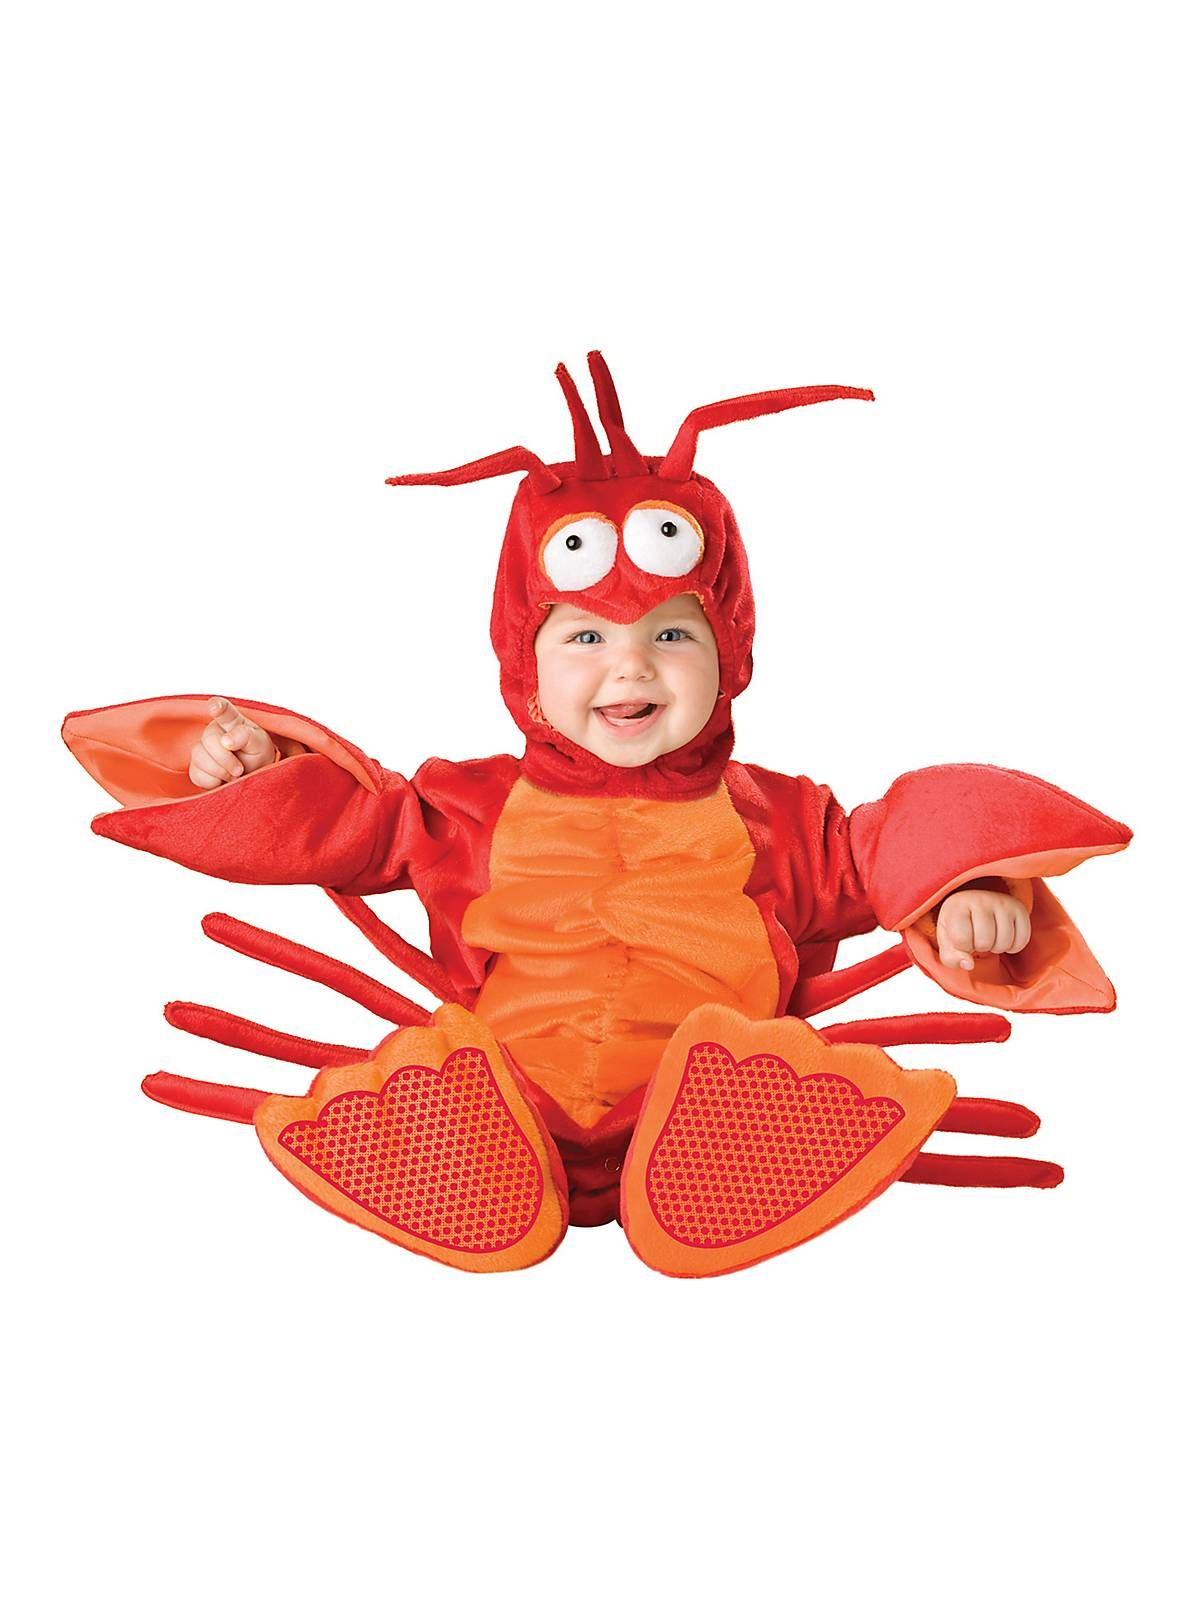 Results 181 240 of 644 for indoor halloween decorations - Baby Lil Lobster Costume Wholesale Animal Costumes For Infants Toddlers